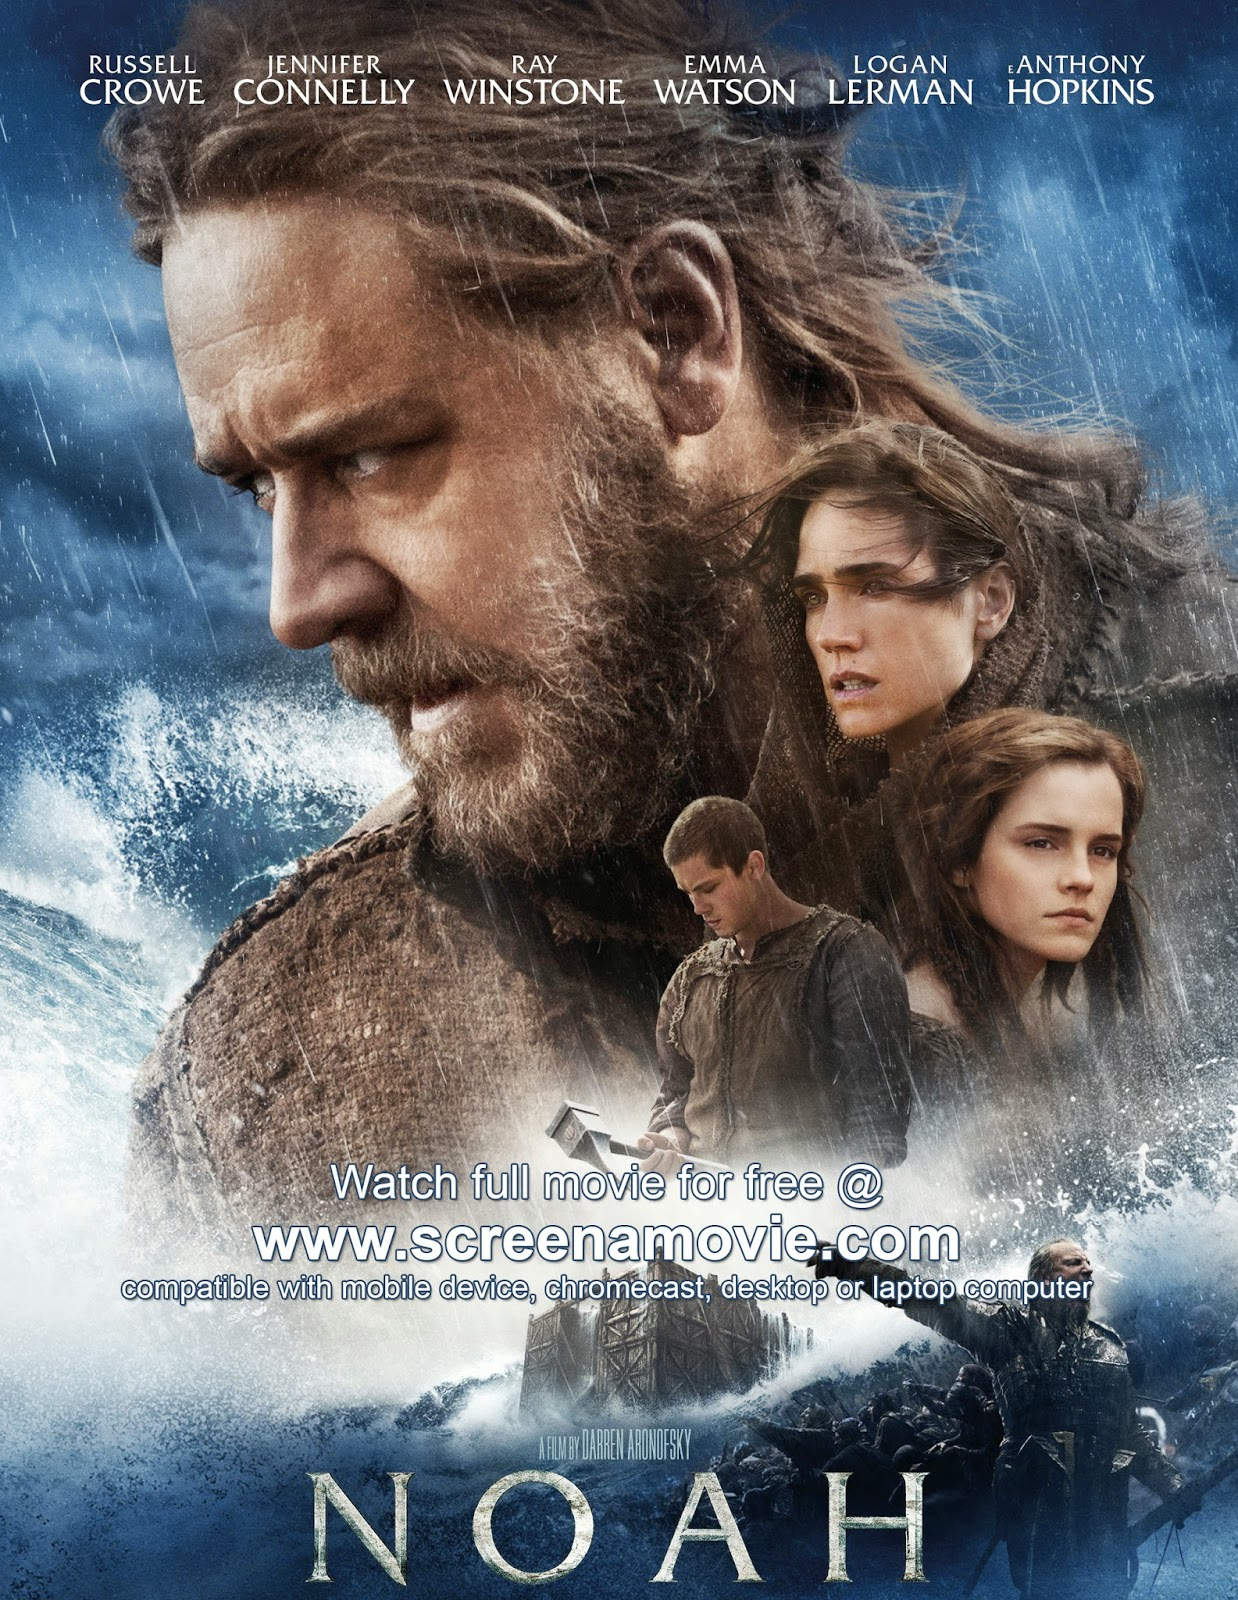 Noah_@screenamovie